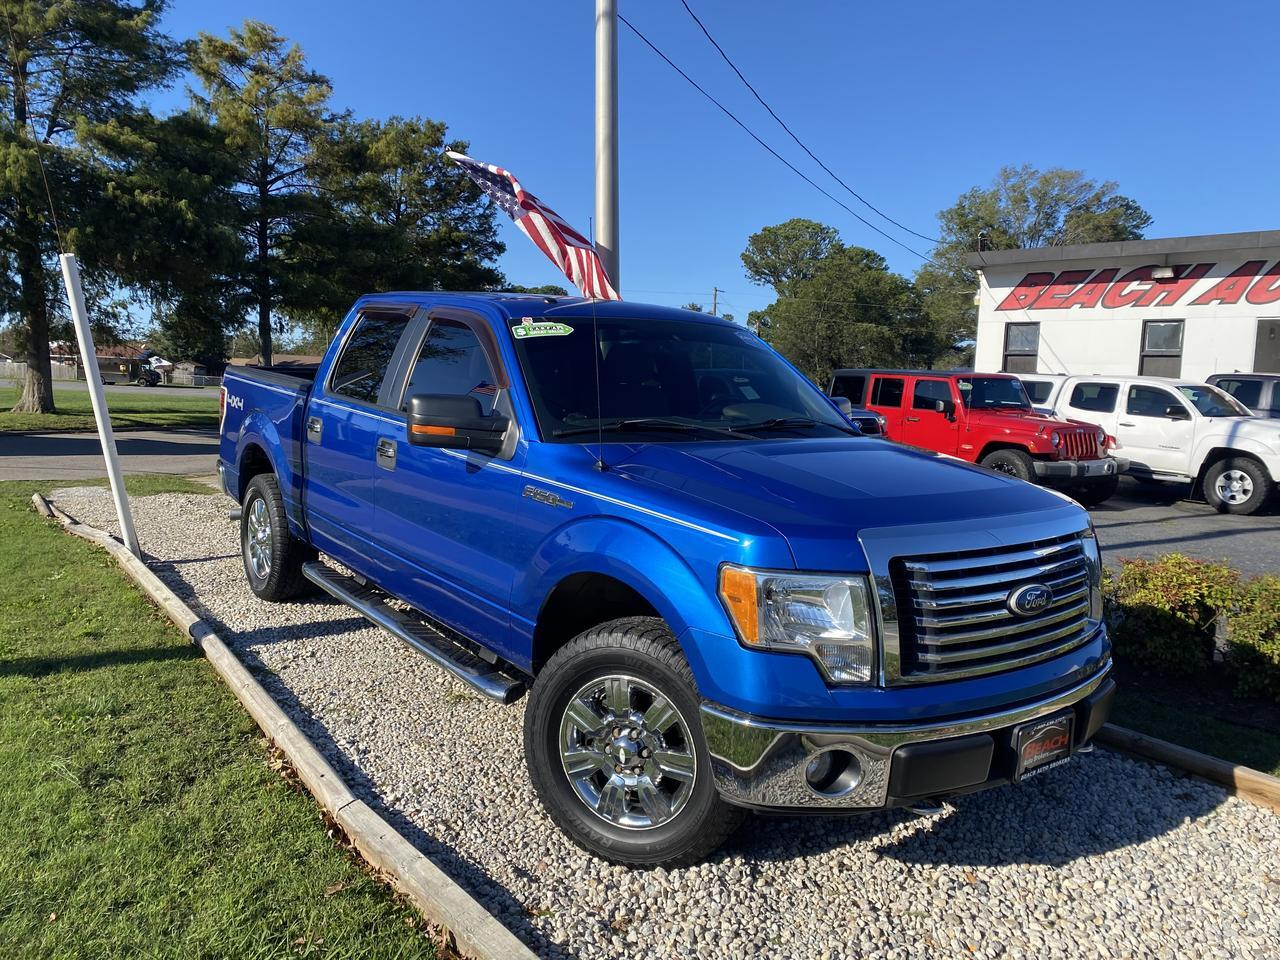 2010 FORD F-150 XLT SUPERCREW 4X4, WARRANTY, RUNNING BOARDS, TOW PKG, AUX/USB PORT, 1 OWNER, LOW MILES! Norfolk VA